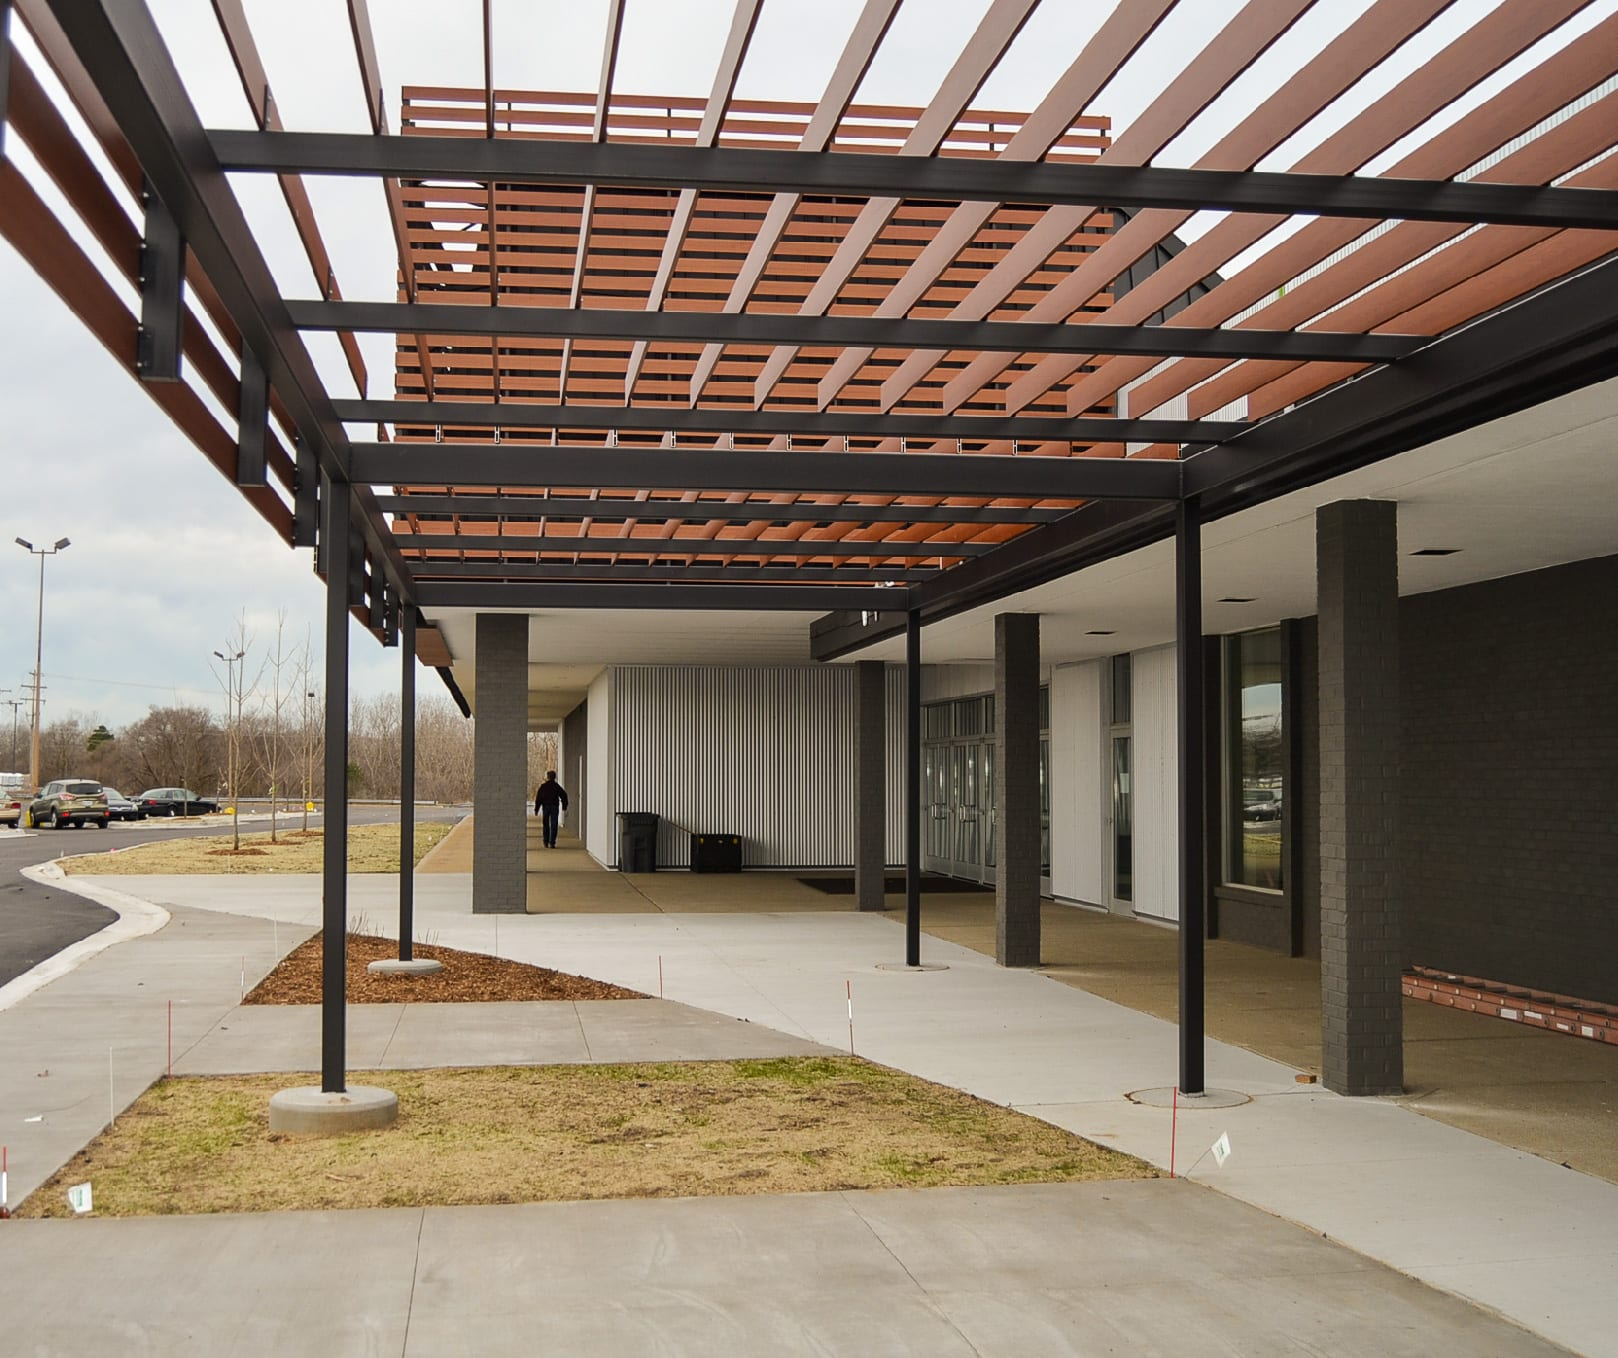 Aluminum Awning Amp Pergola Kits That Look Like Wood Knotwood